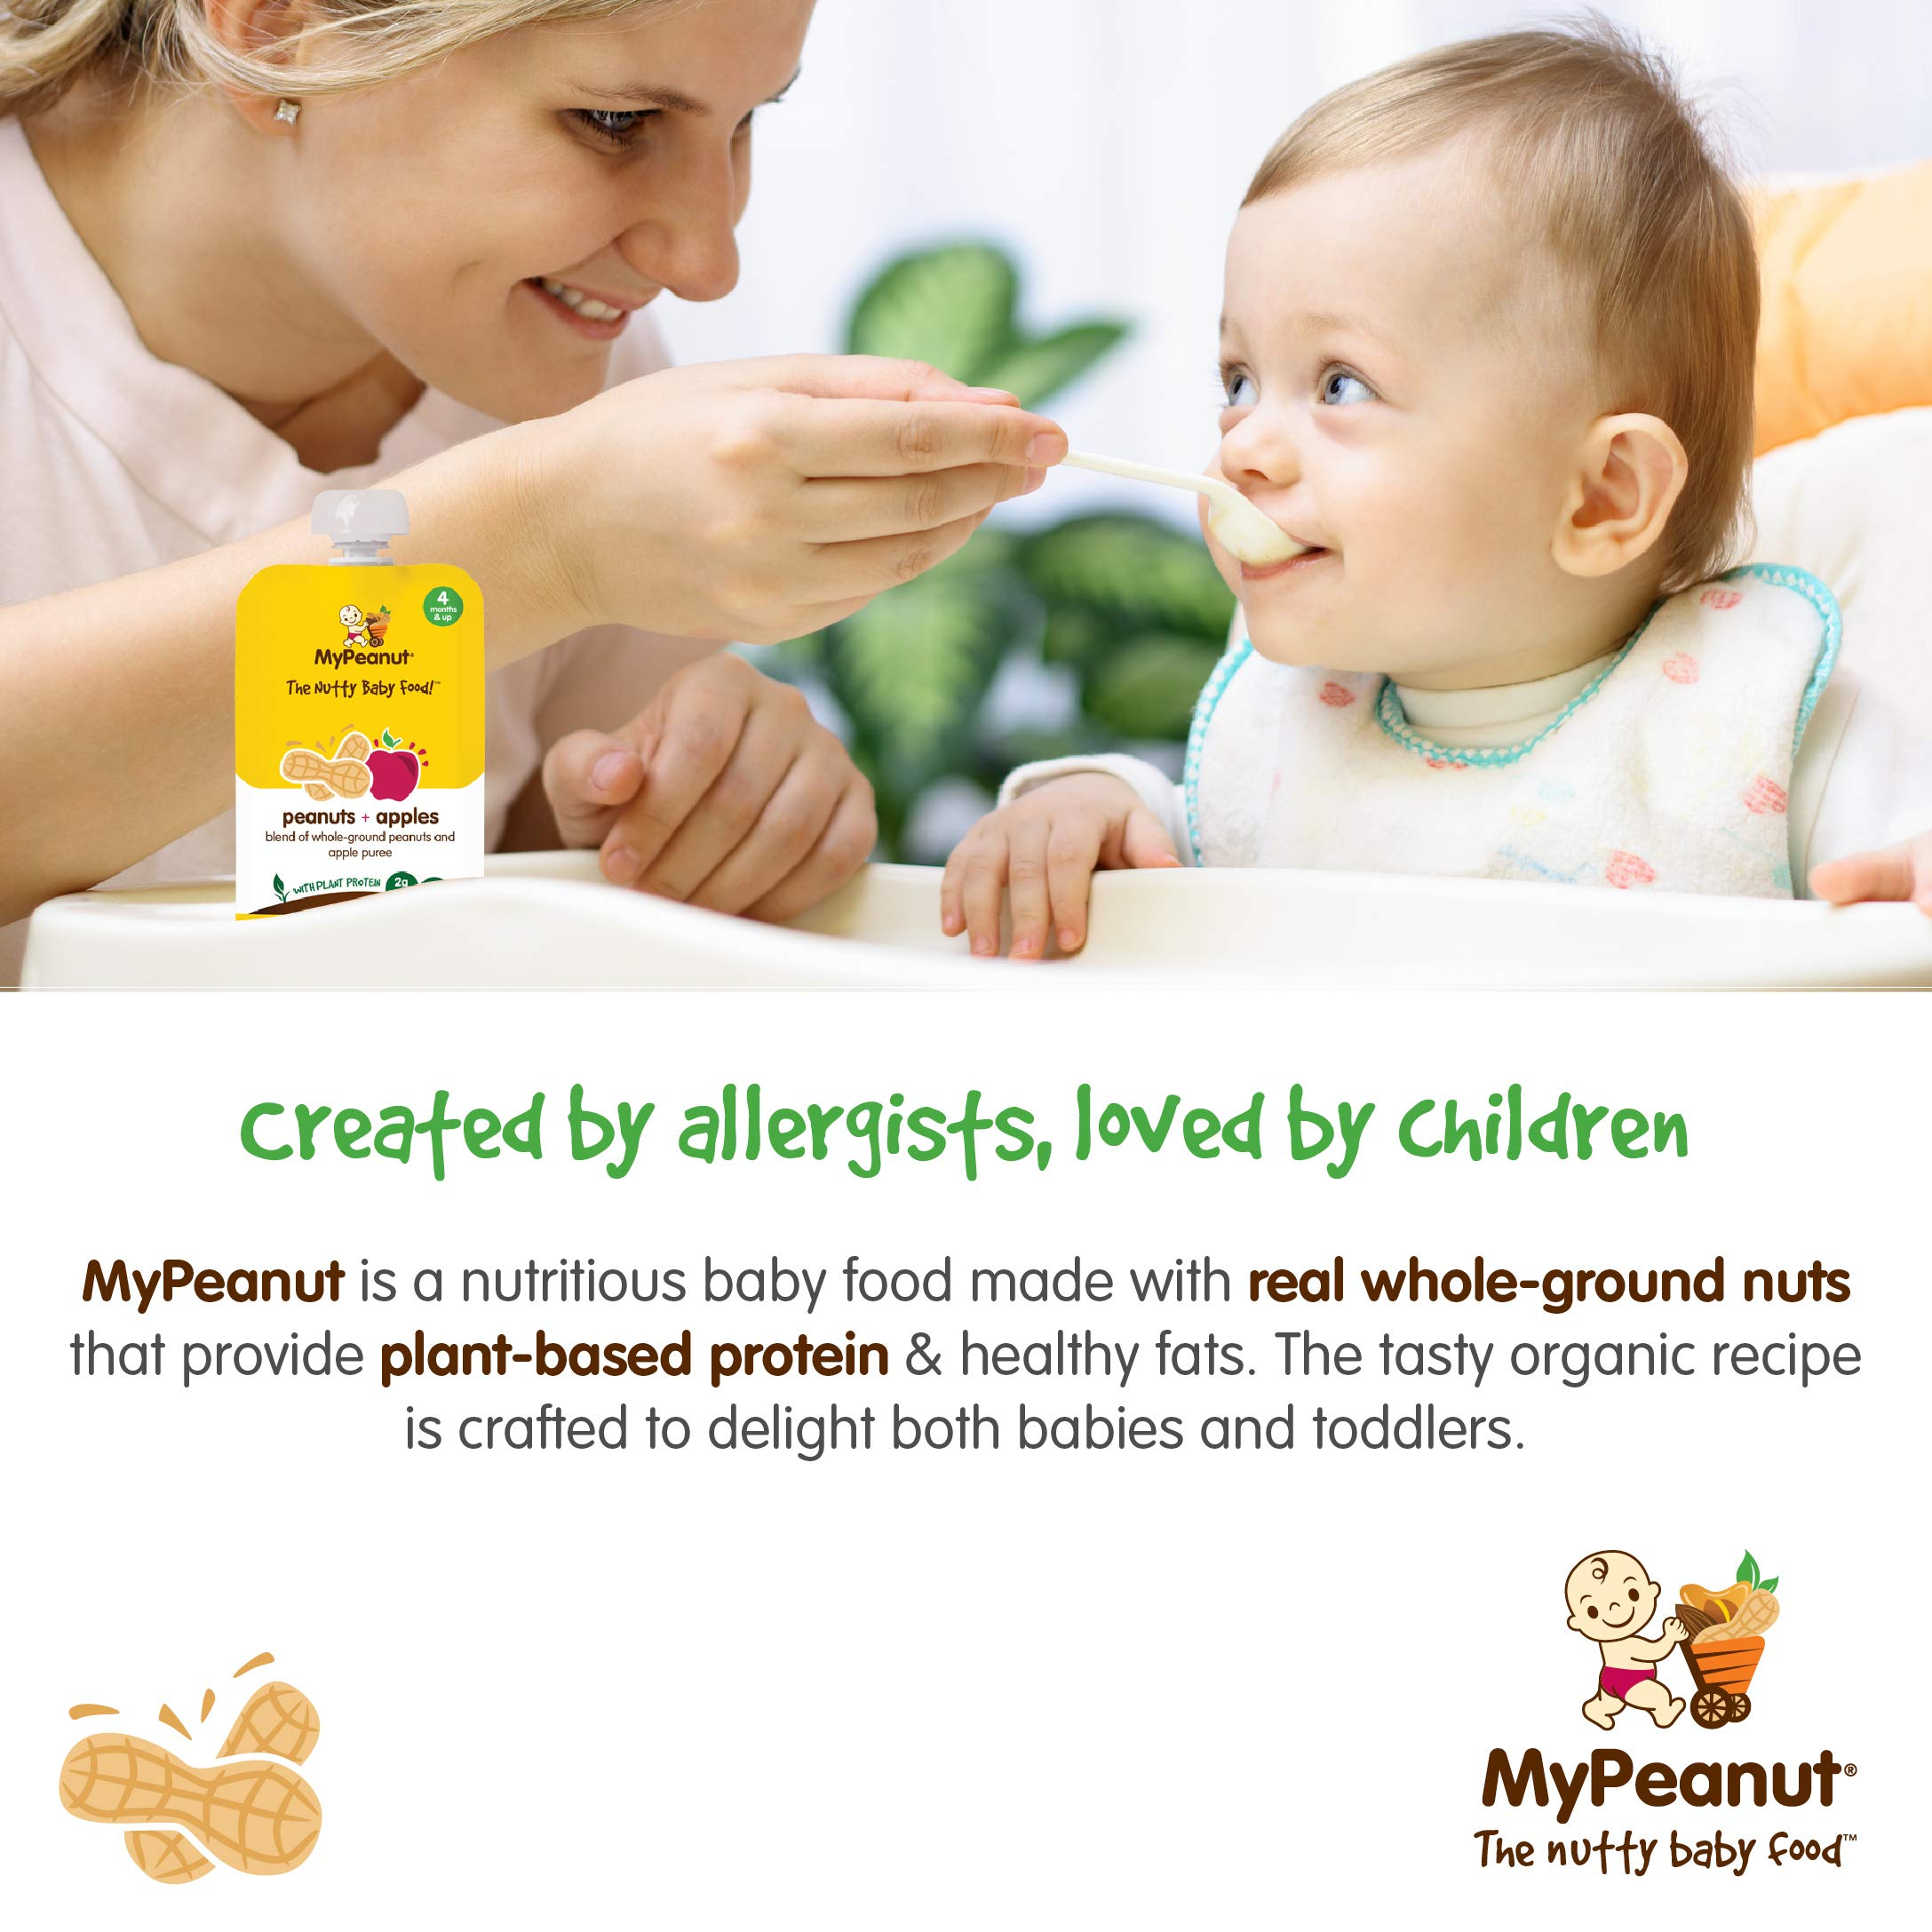 MyPeanut Baby Food, Organic Stage 1 Peanut and Apple Puree for Introducing and Feeding Babies and Toddlers Nuts, Non-GMO, BPA Free 3.5 oz Pouch, 24 Pack by MyPeanut (Image #2)